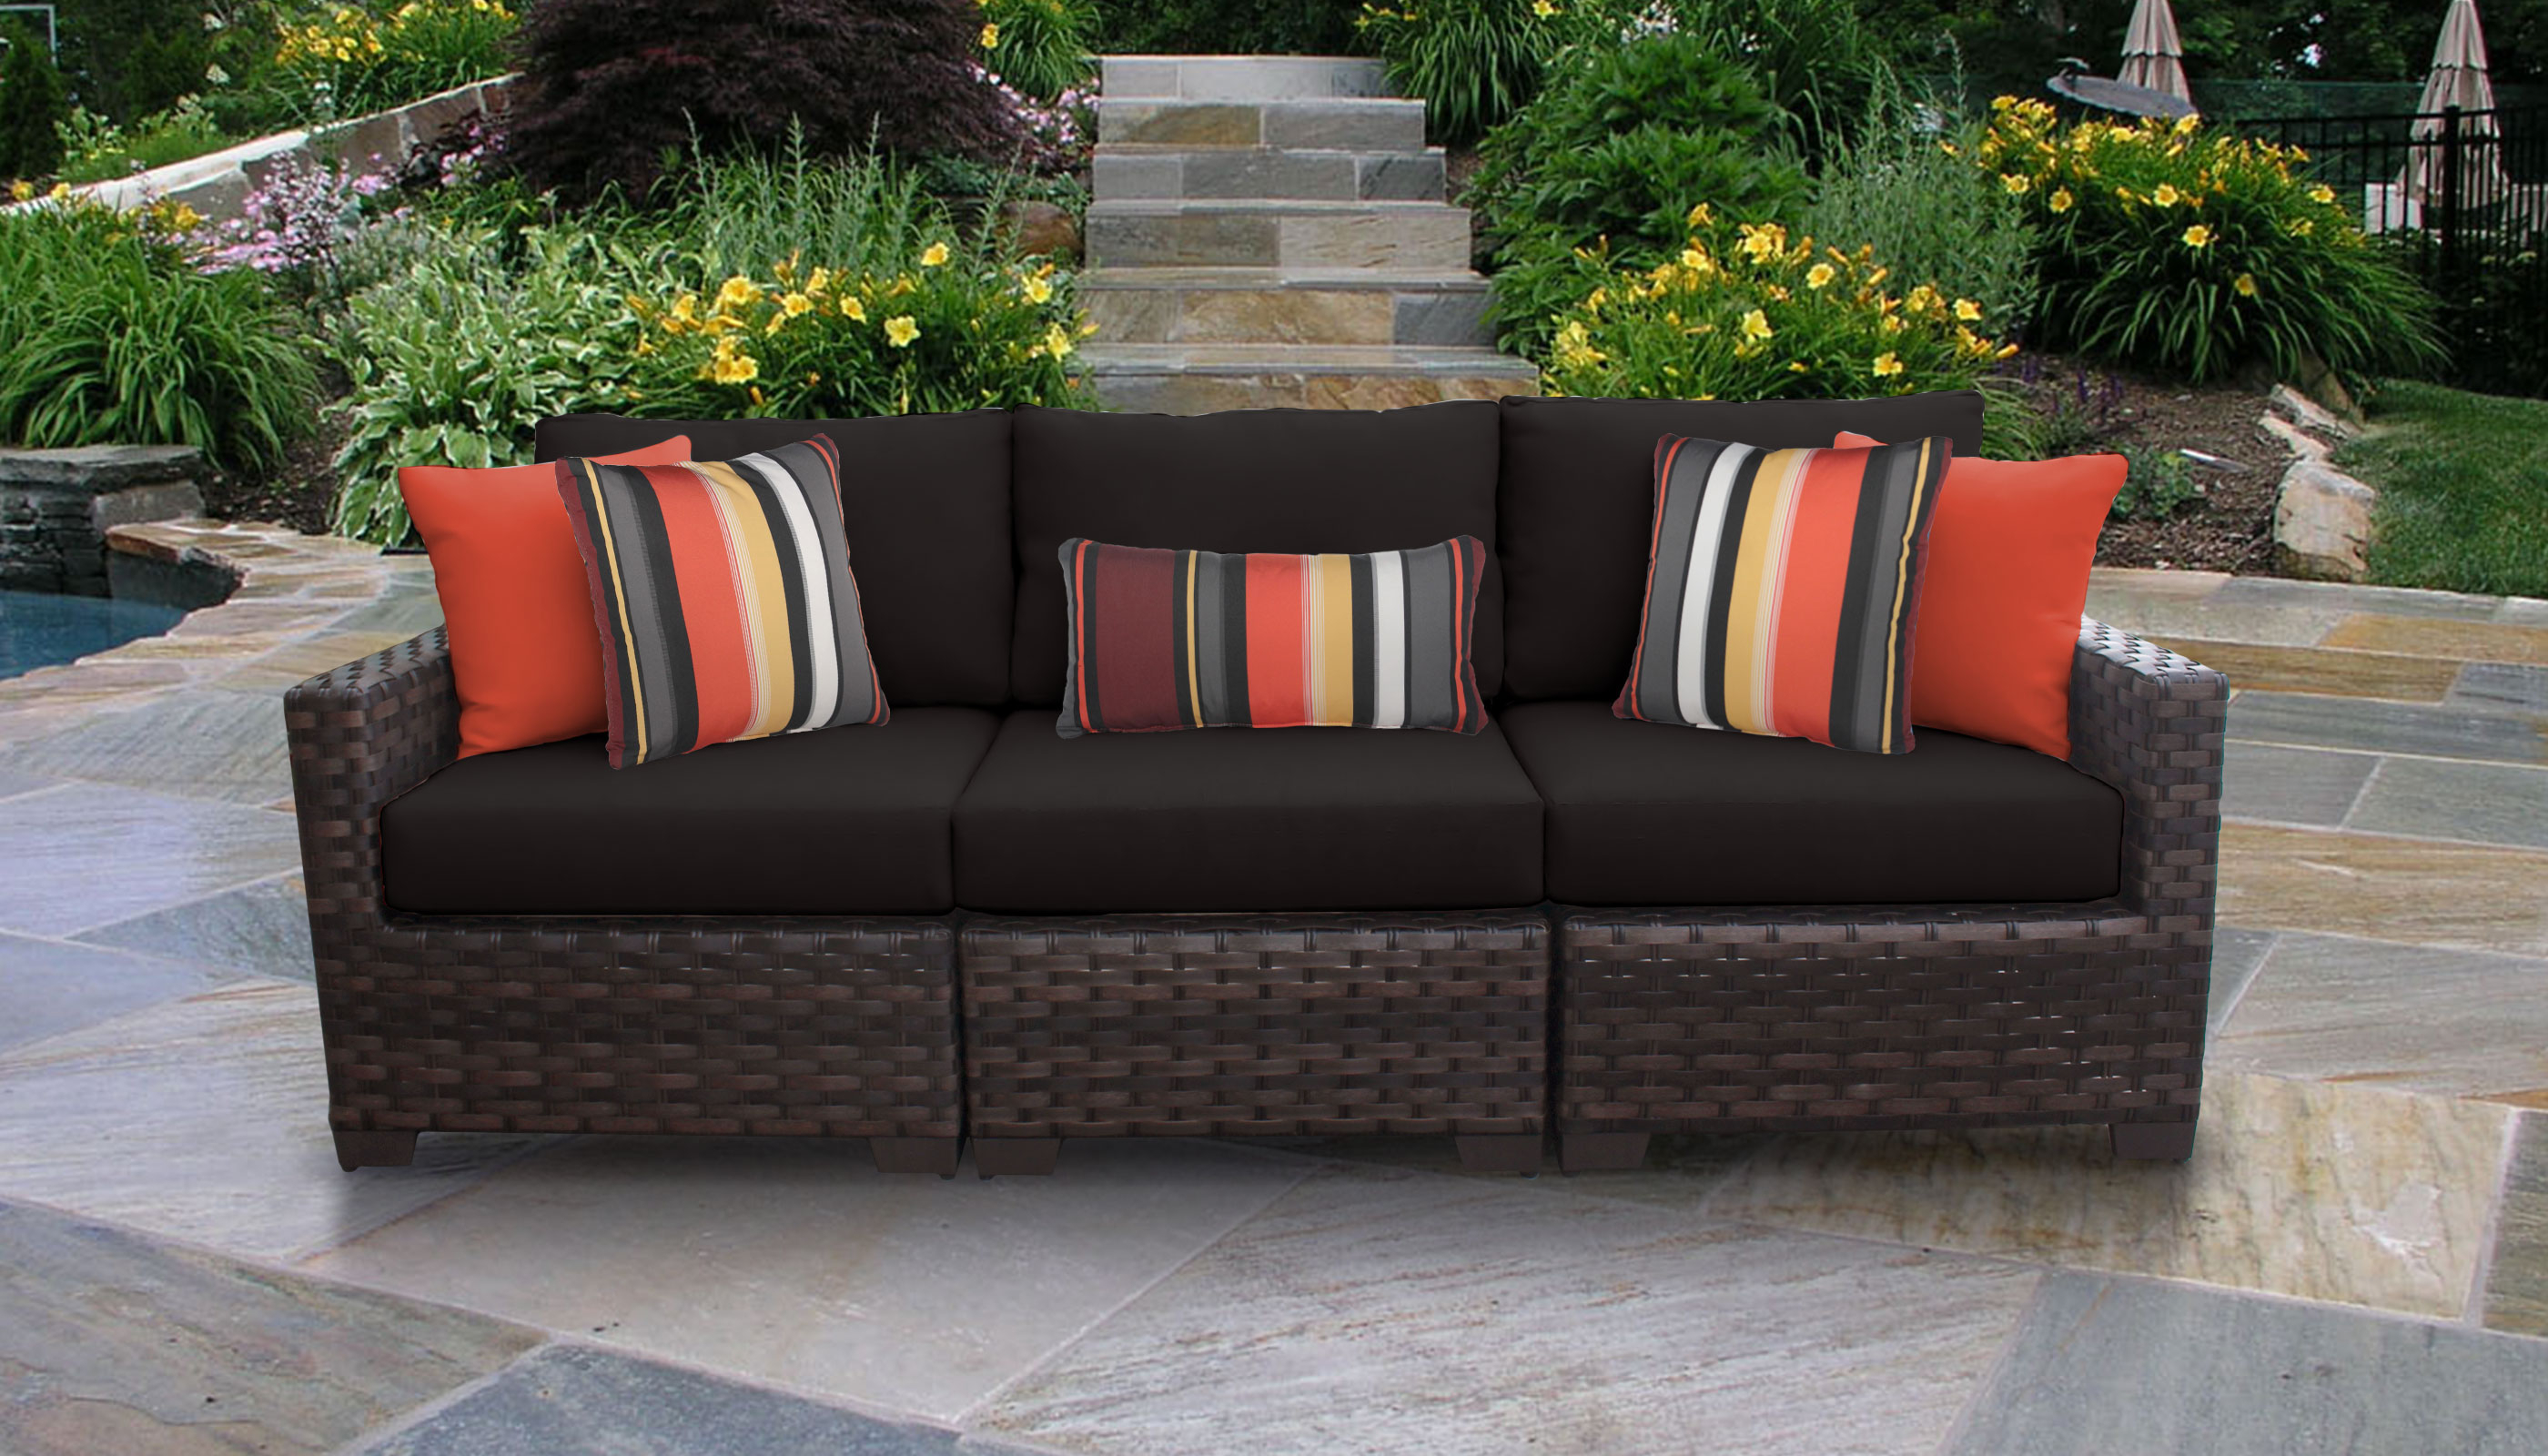 Best And Newest Oreland Patio Sofas With Cushions Regarding River 3 Piece Outdoor Wicker Patio Furniture Set 03c (View 17 of 20)